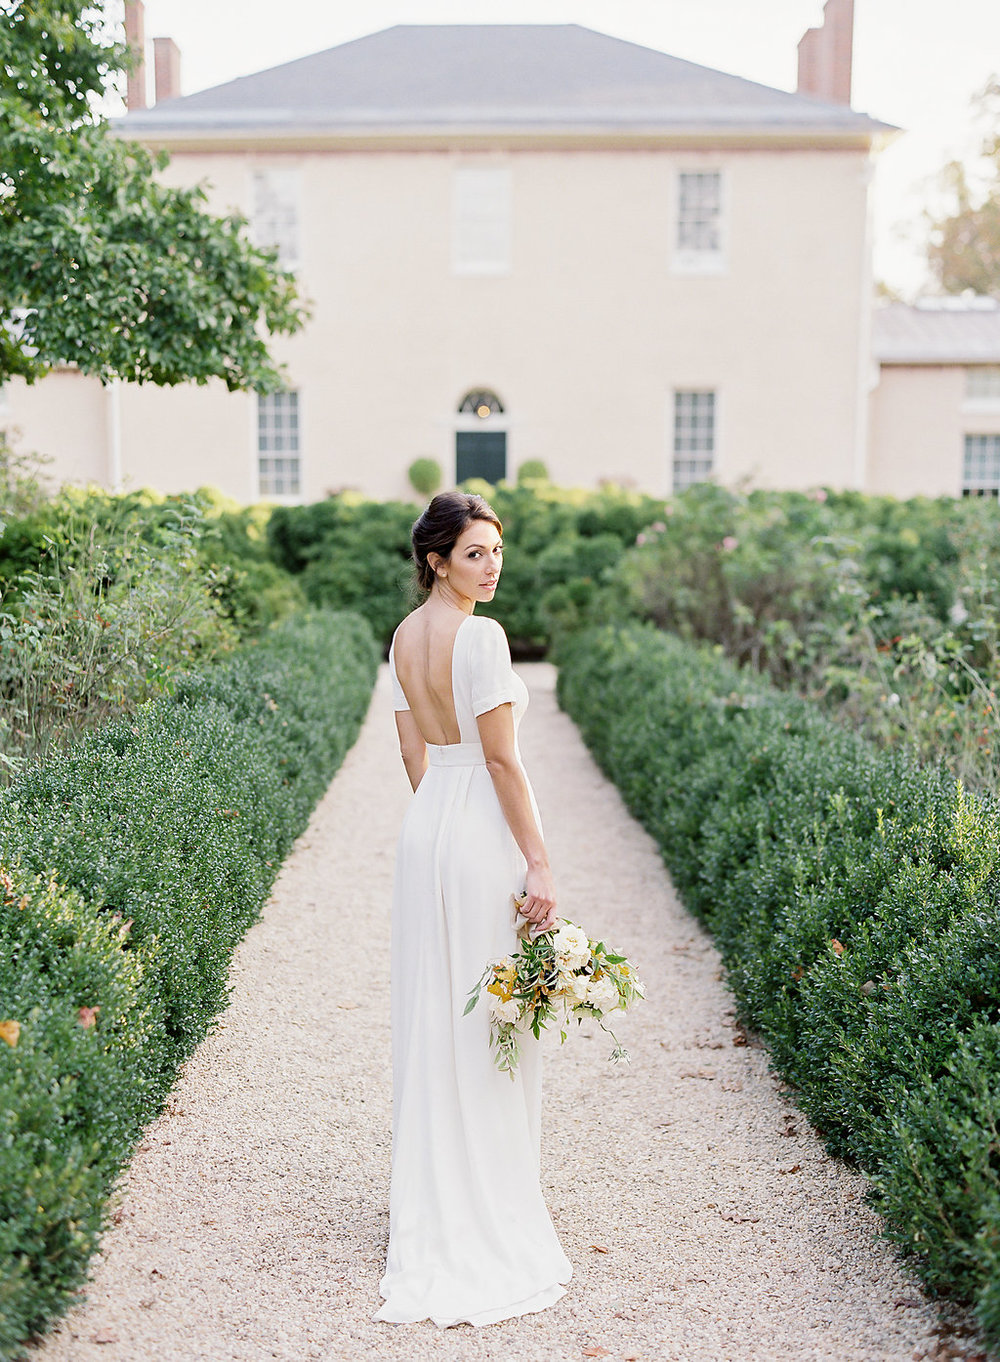 Vicki Grafton Photography, Fine art film destination wedding photographer, washington DC, Virginia, tuscan inspired, california, new york, classic bride